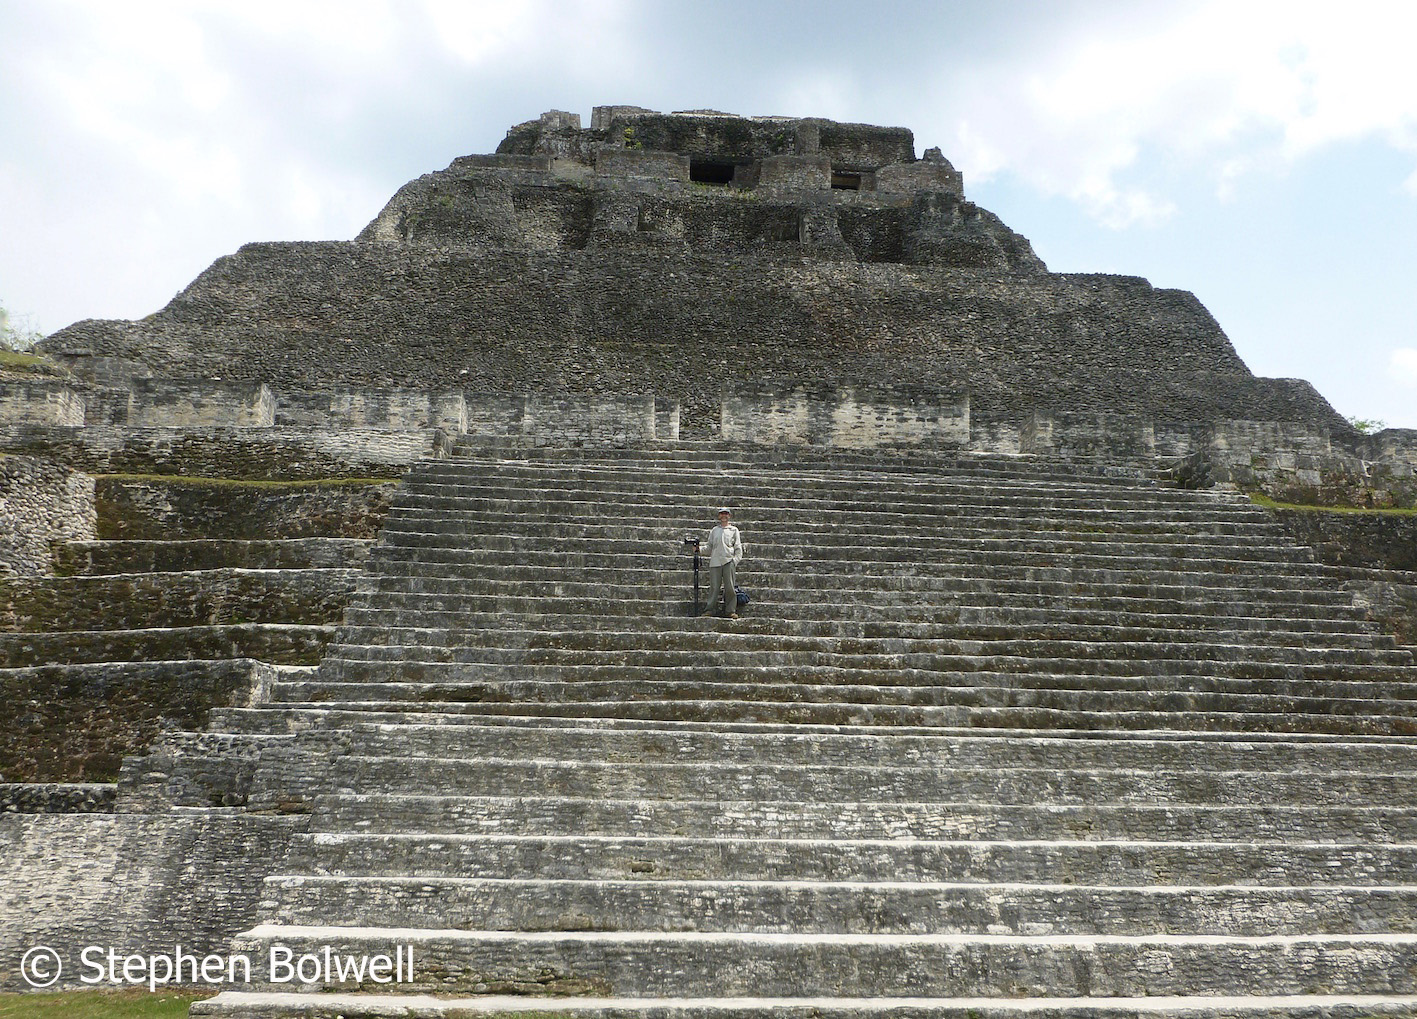 Standing on the steps of pyramid El Castillo - the most prominent structure here - looking down onto the square below.